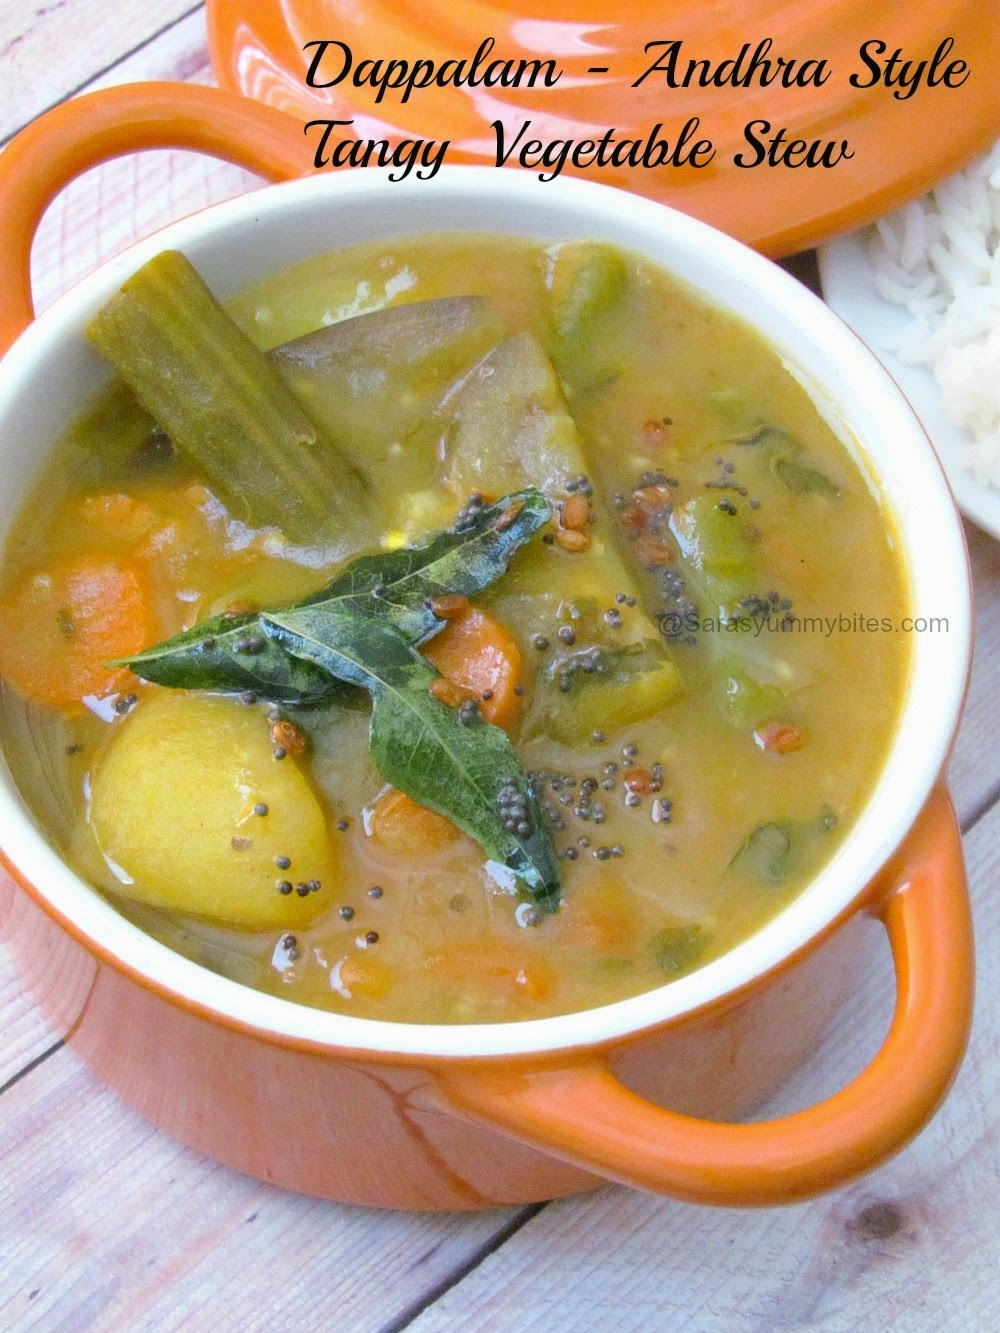 Dappalam/ Dhappalam - AndhraPradesh Tangy  Vegetable Stew